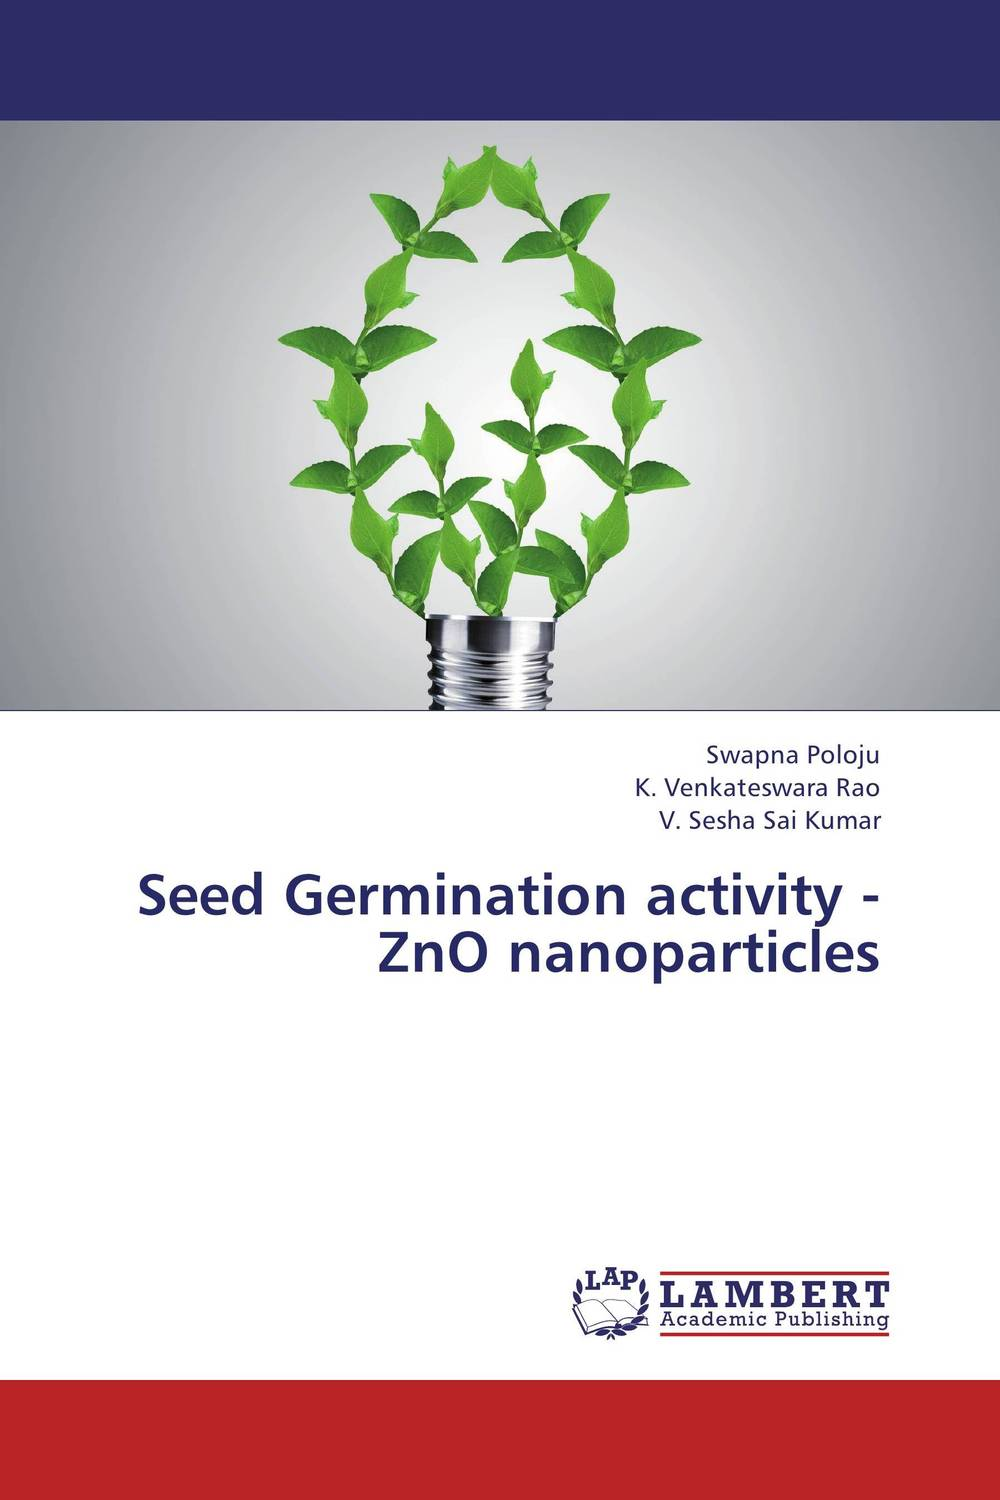 Seed Germination activity - ZnO nanoparticles seed dormancy and germination